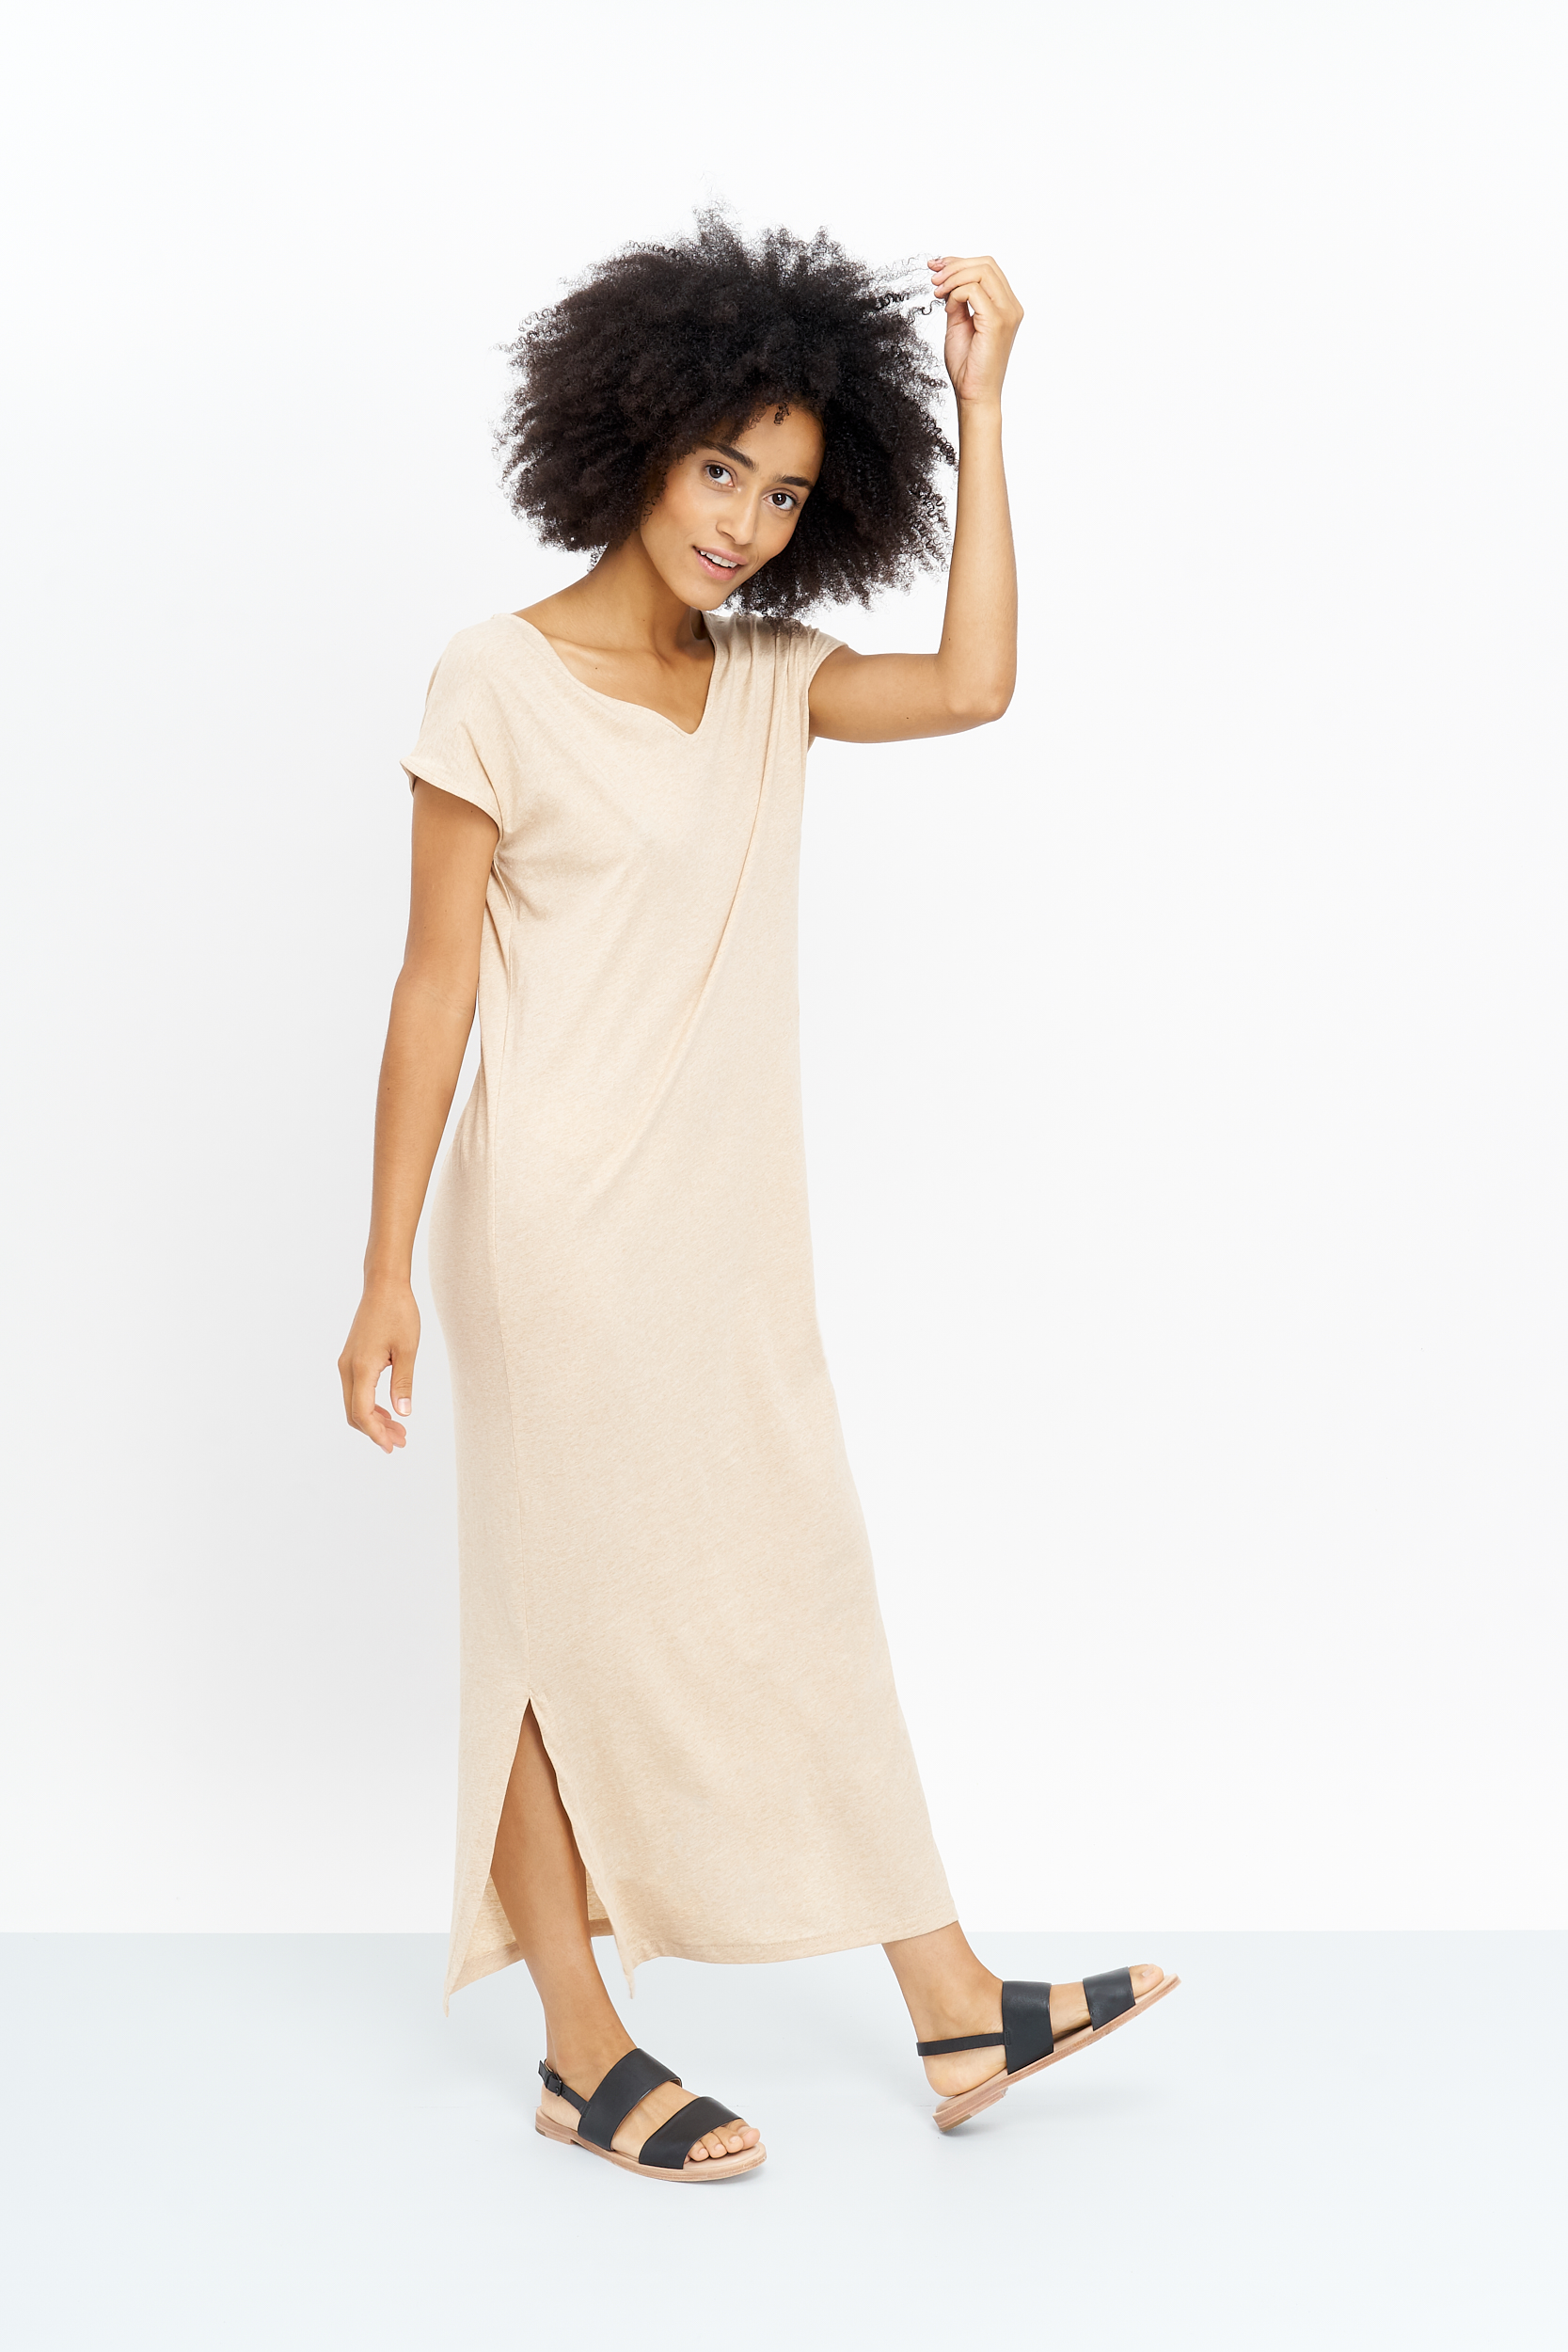 The soledad dress is made our of a beautiful organic cotton in Peru and will launch mid March.